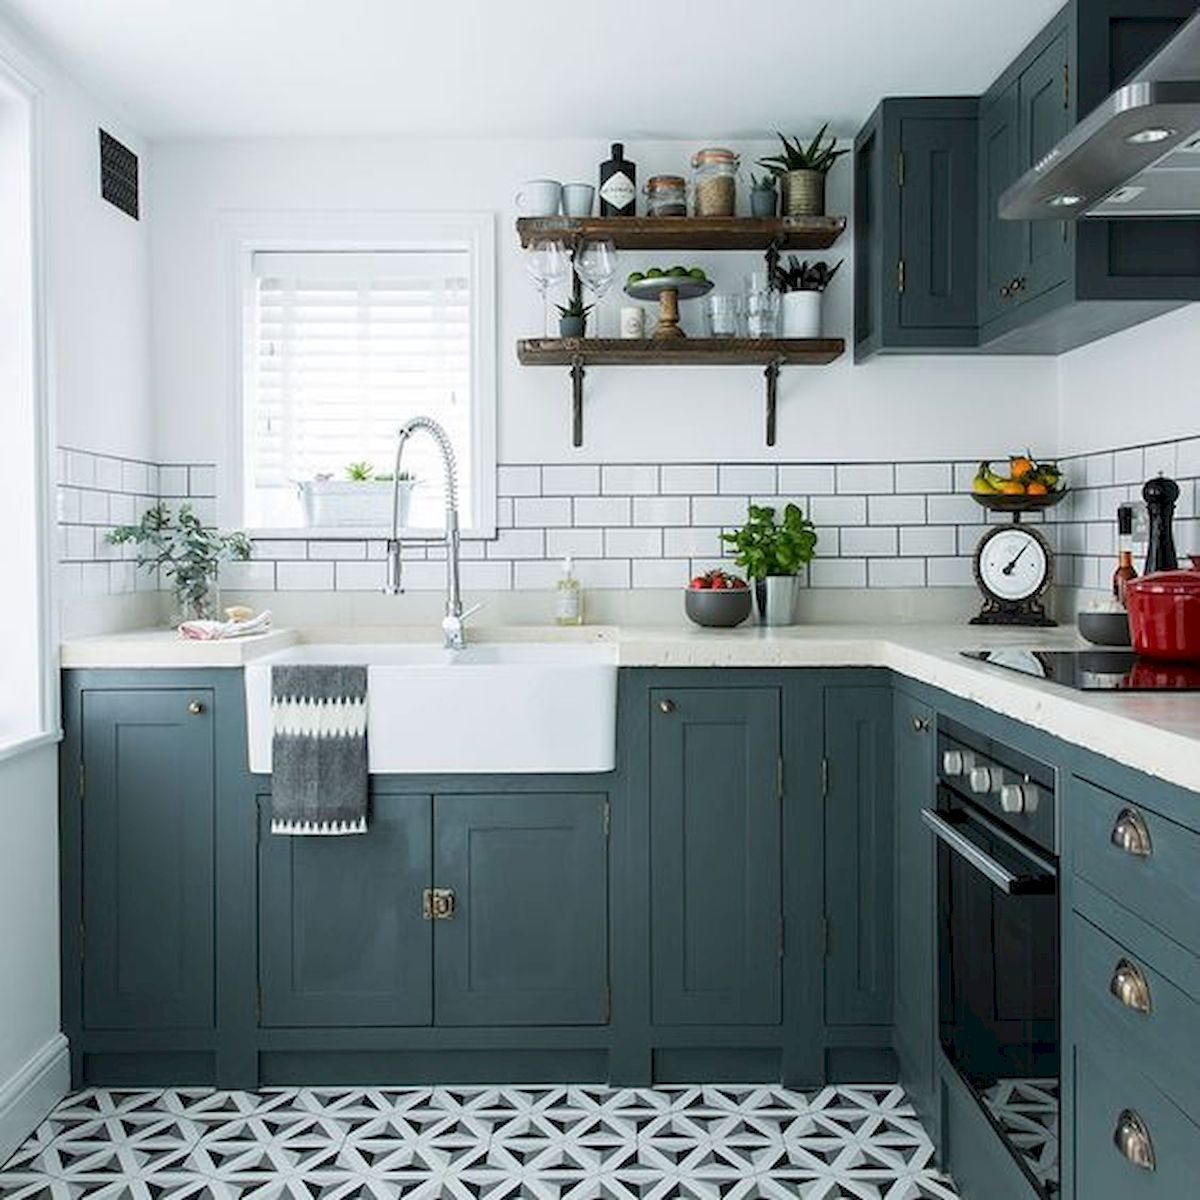 Home Design Ideas For 2019: 90 Beautiful Small Kitchen Design Ideas (44)